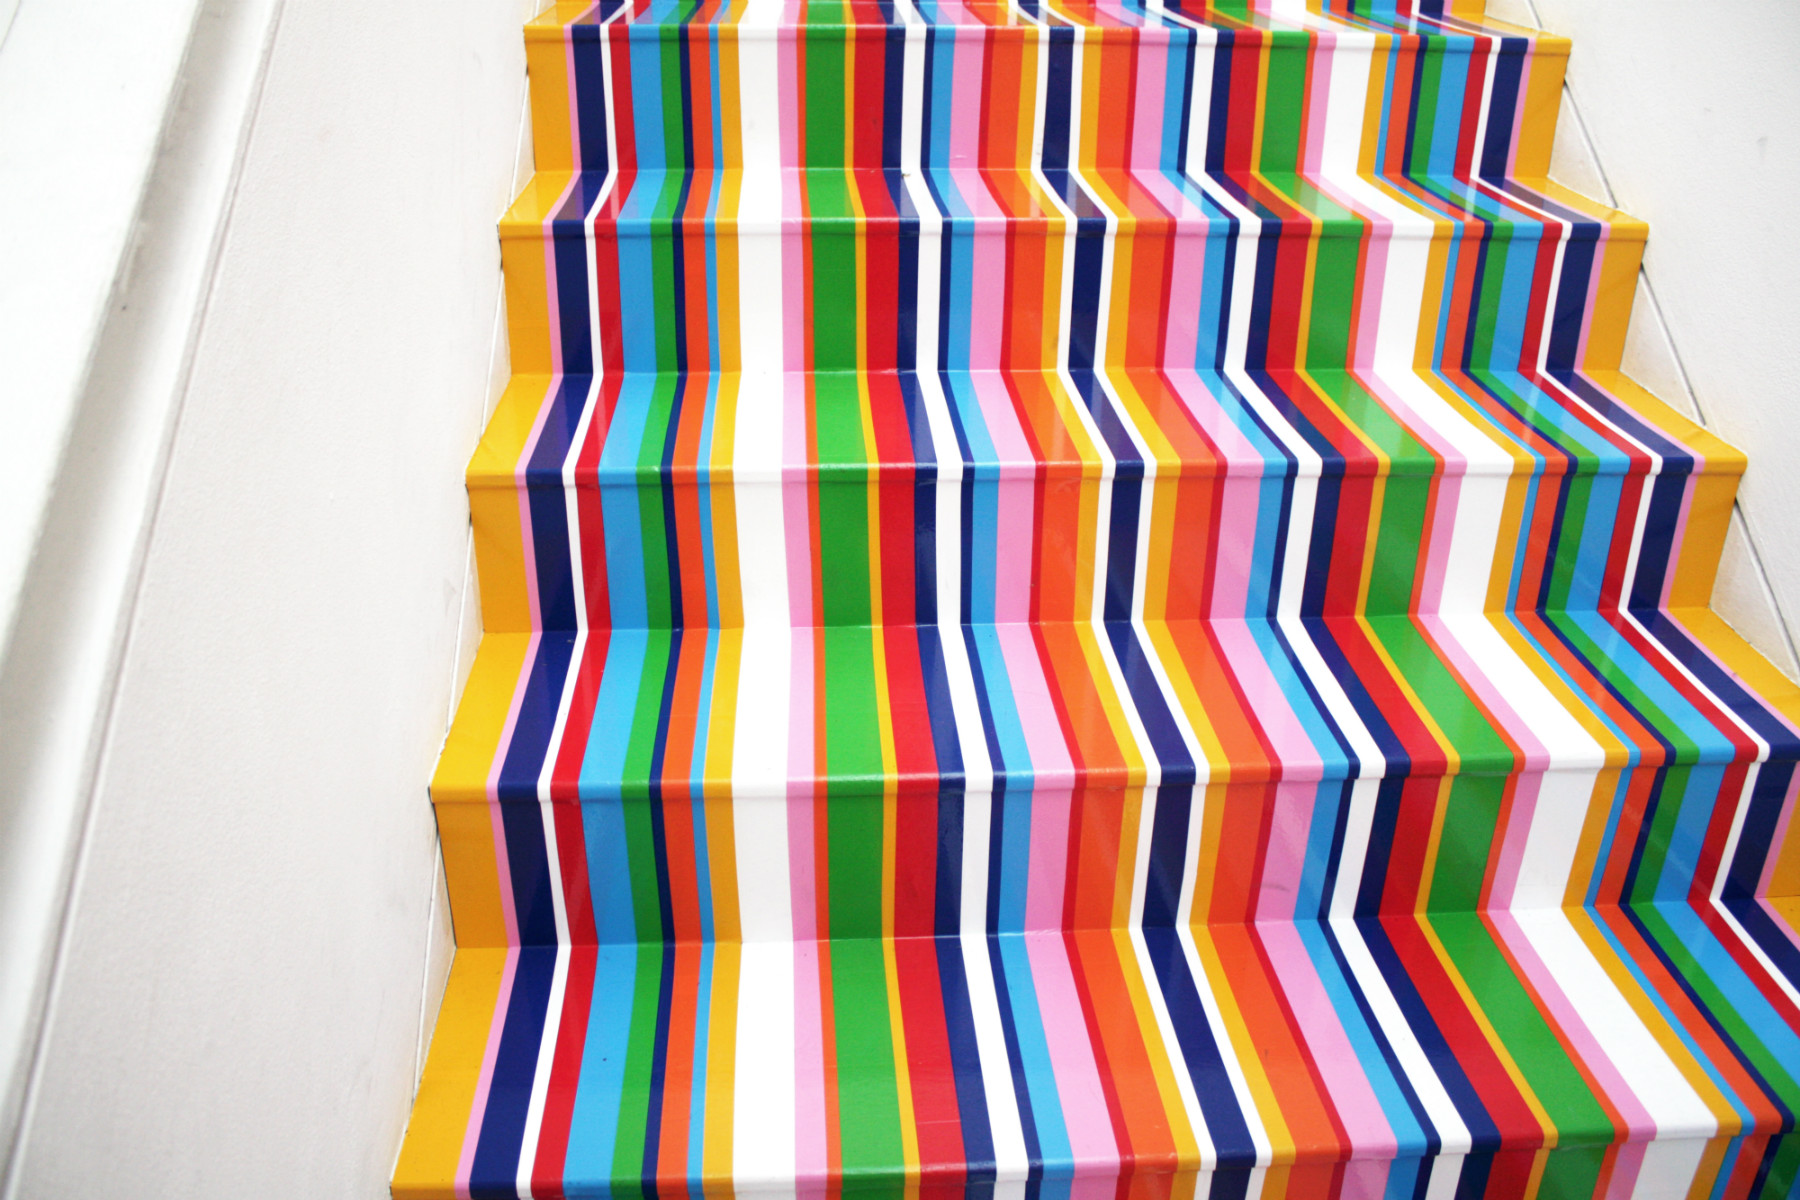 jim lambie fruitmarket multi colour stripes stairs